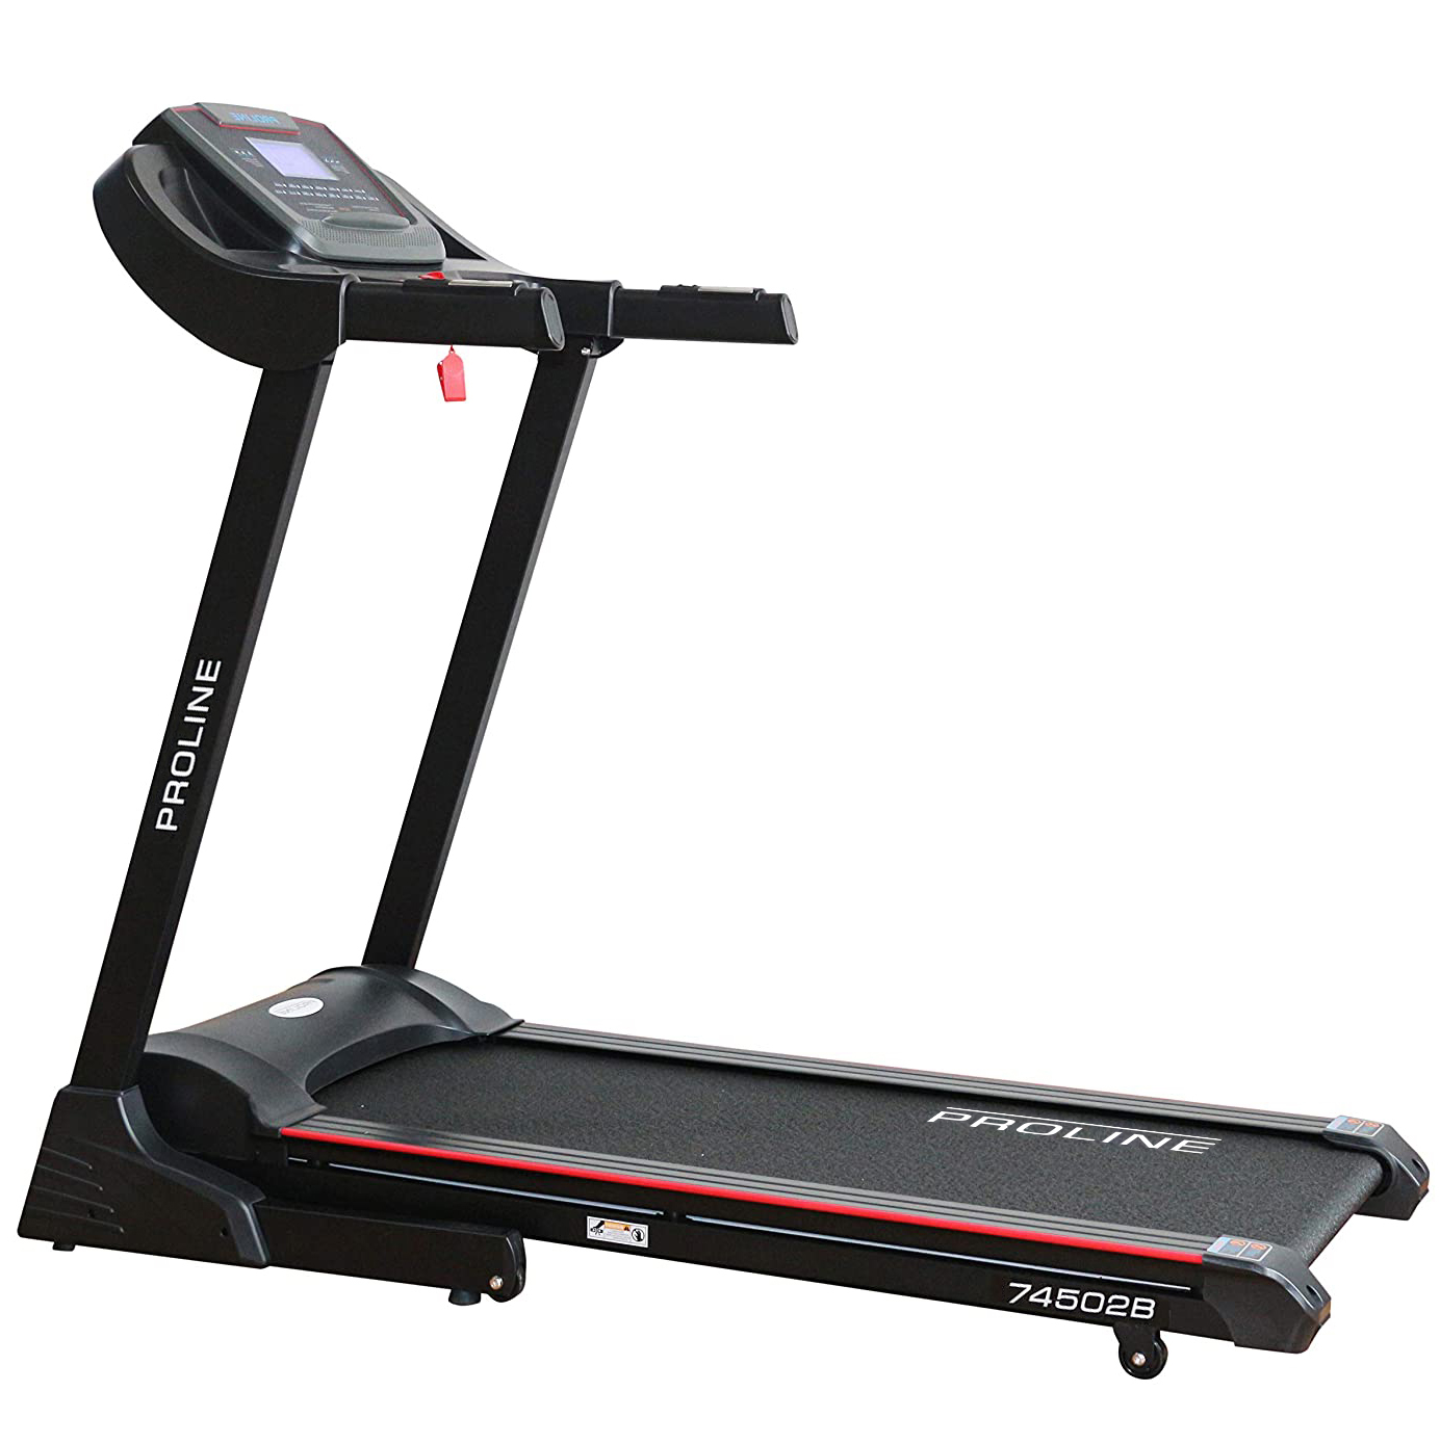 PROLINE 74502B TREADMILL